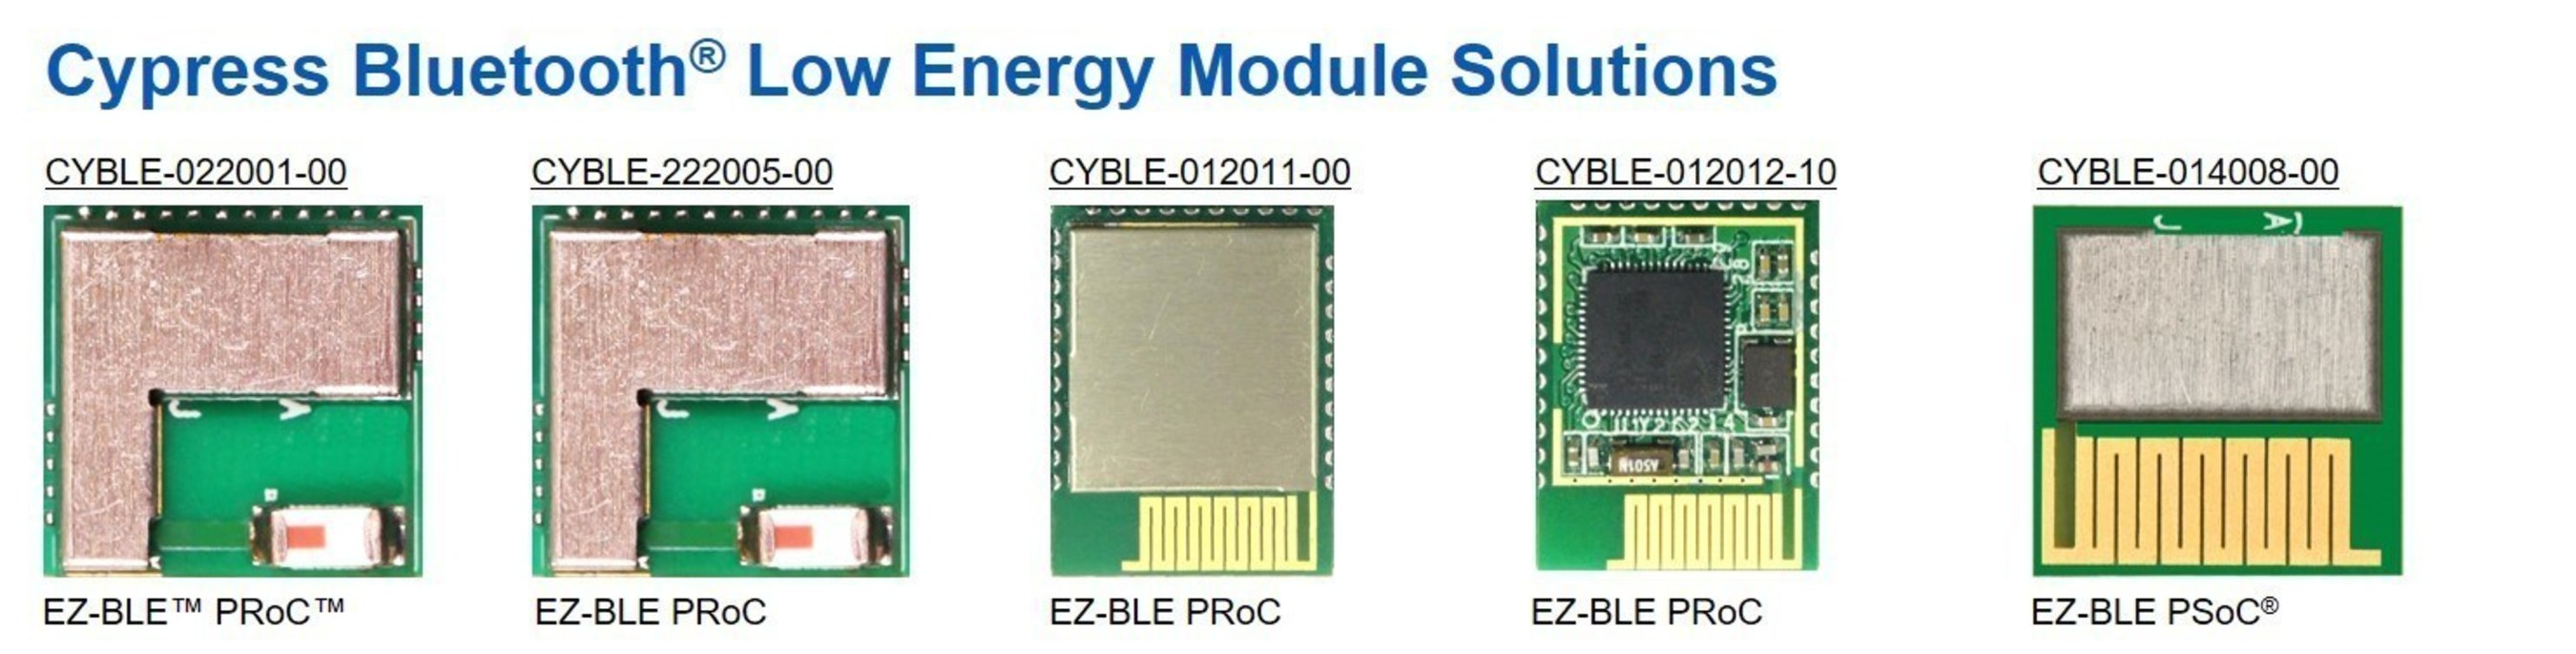 Cypress Unveils New Bluetooth® Low Energy Modules and Bluetooth